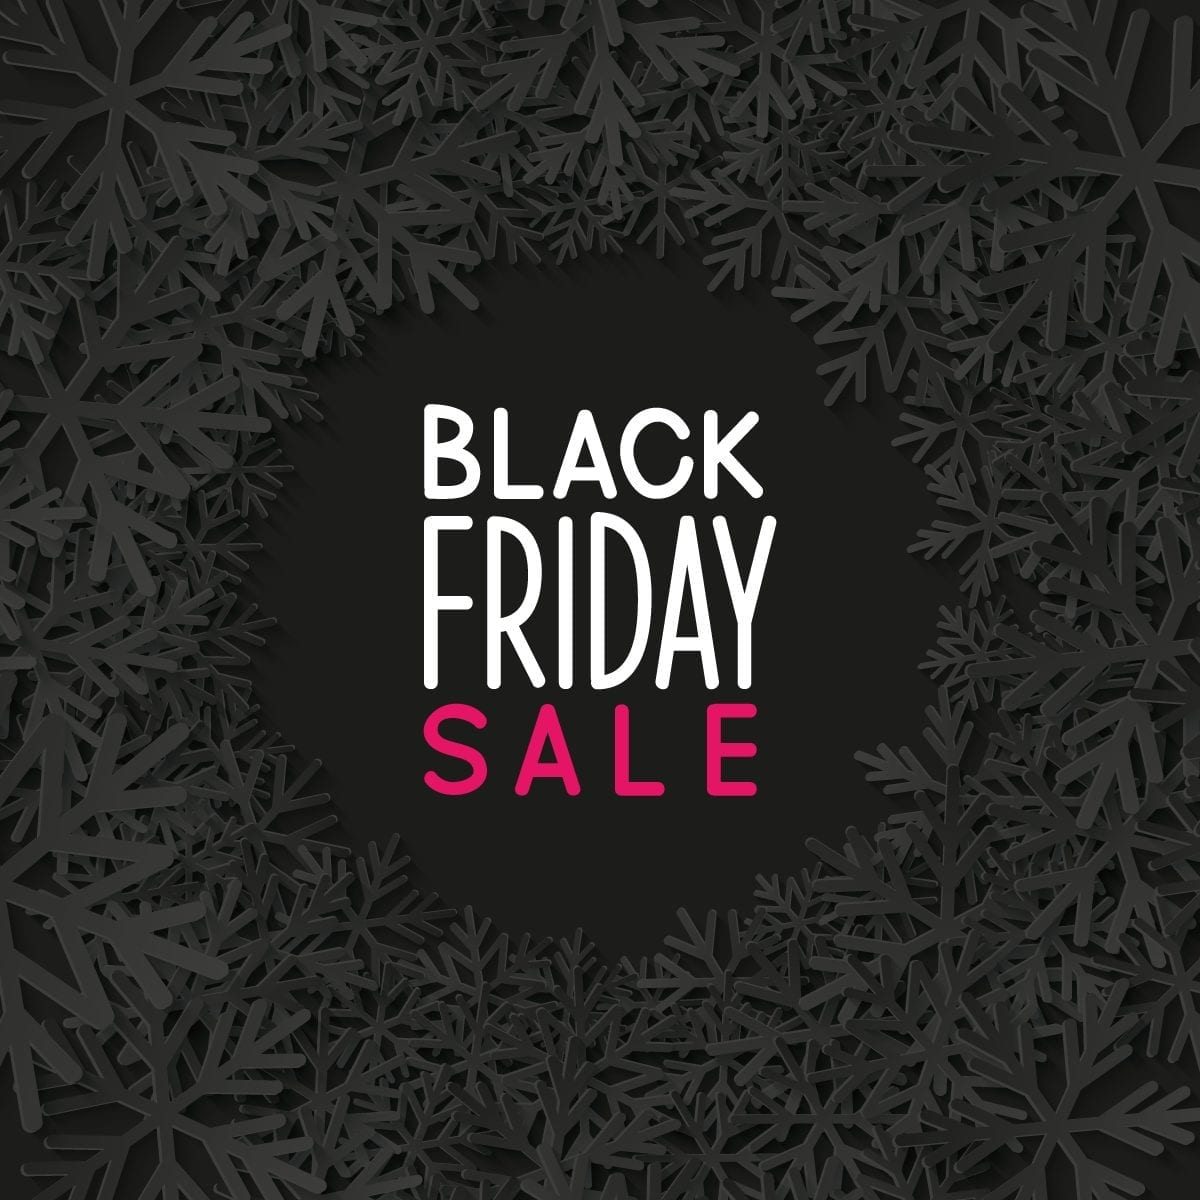 pink-is-the-new-black-black-friday-deals-from-obrien-media.png